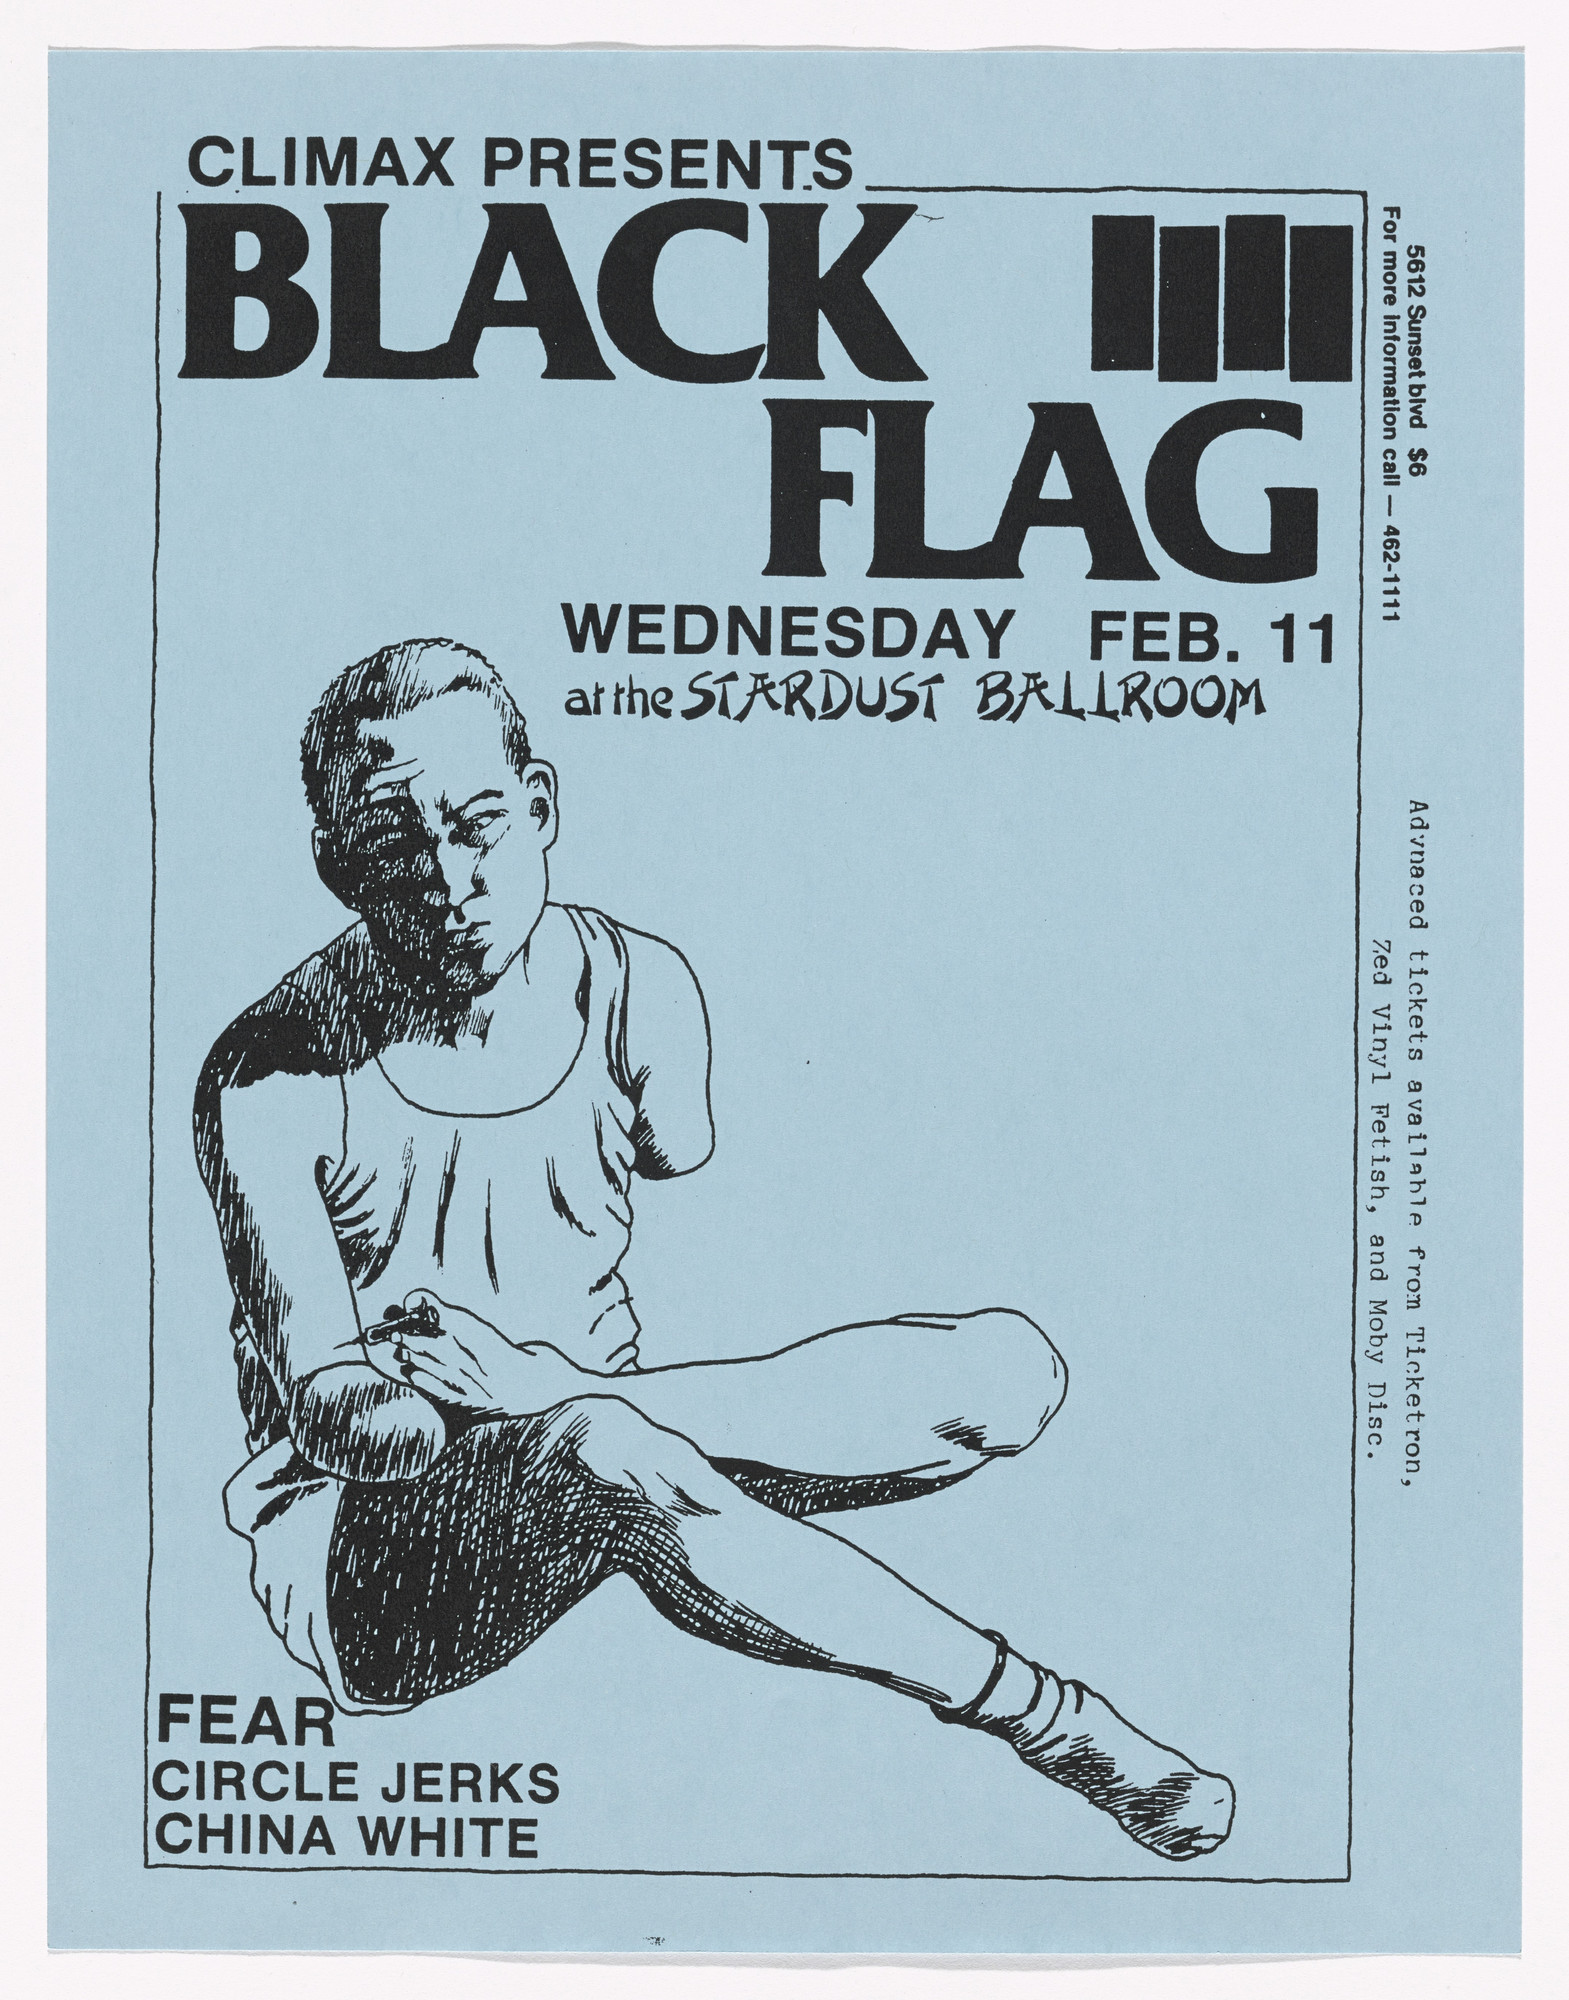 Raymond Pettibon. Black Flag at Stardust Ballroom. February 11, 1981